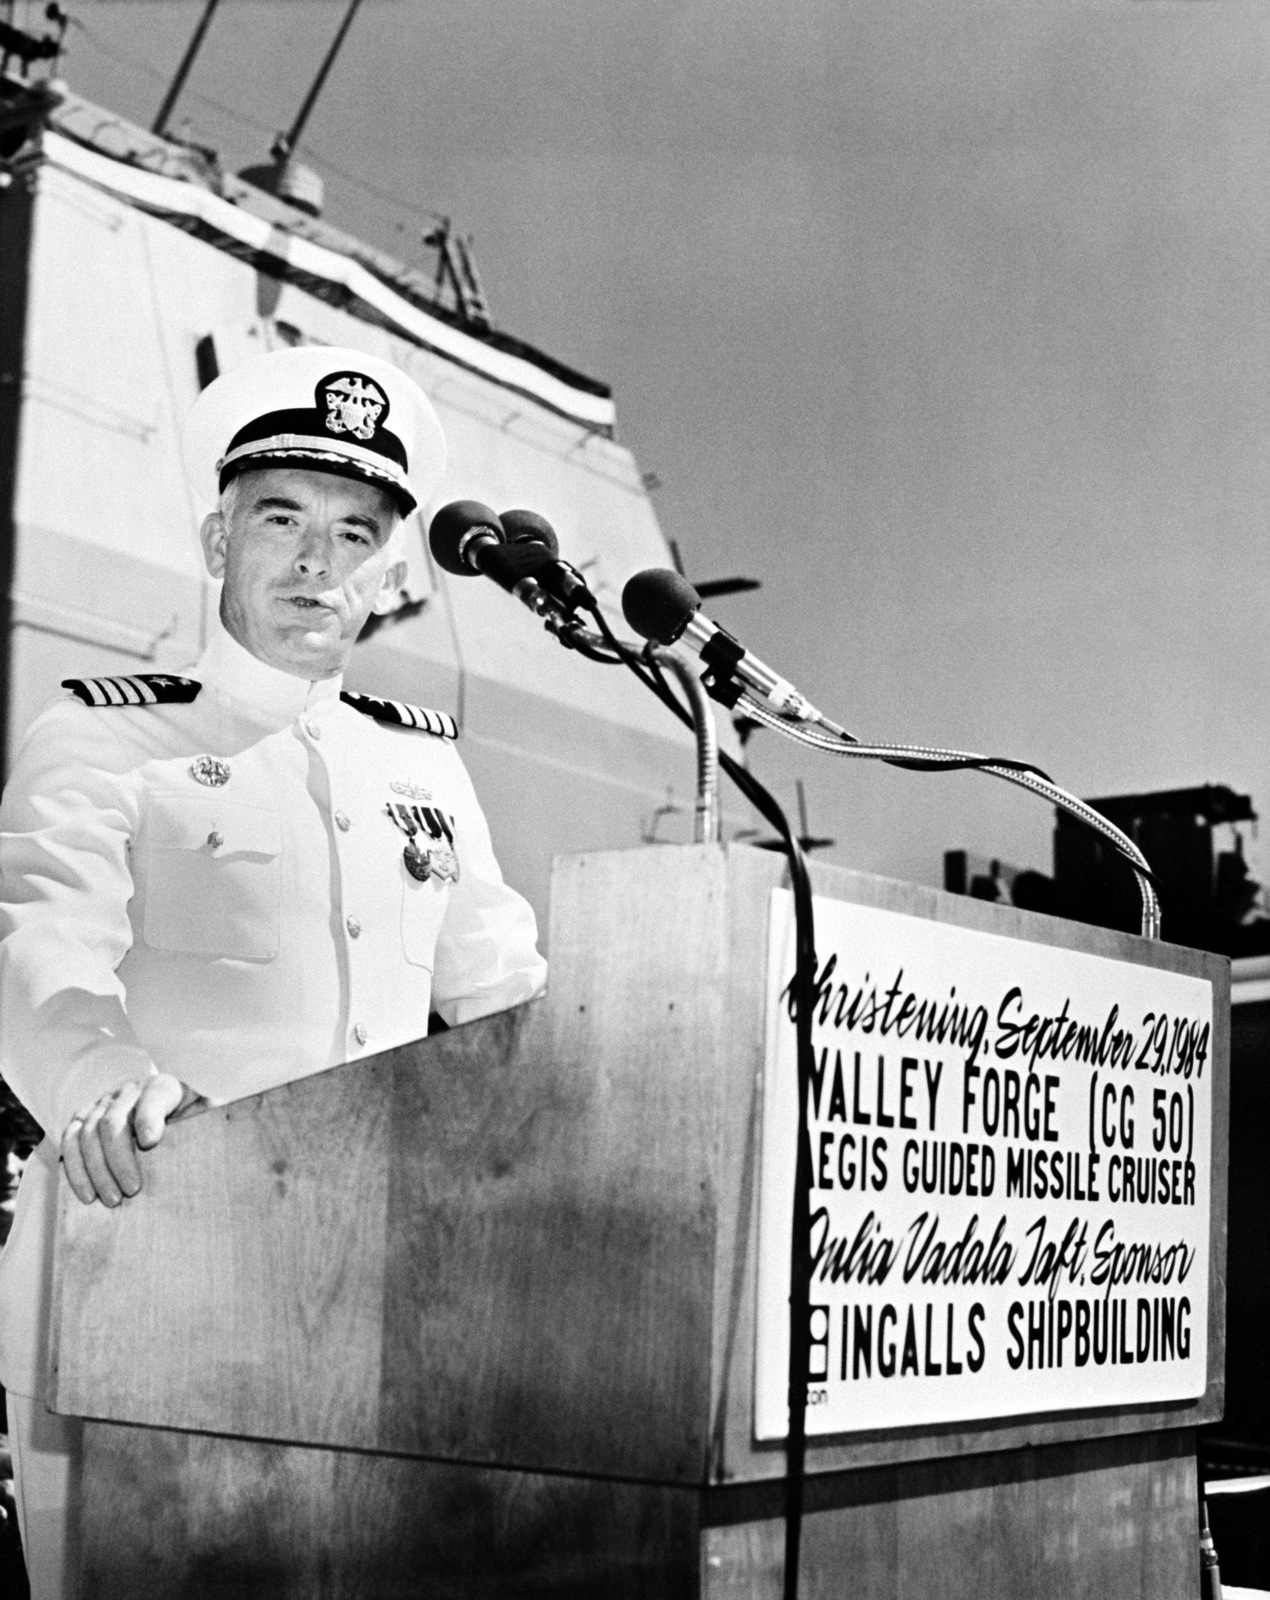 Captain George W. Dowell III, supervisor of shipbuilding, Pascagoula, speaks during the christening ceremony for the Aegis guided missile cruiser USS VALLEY FORGE (CG 50)